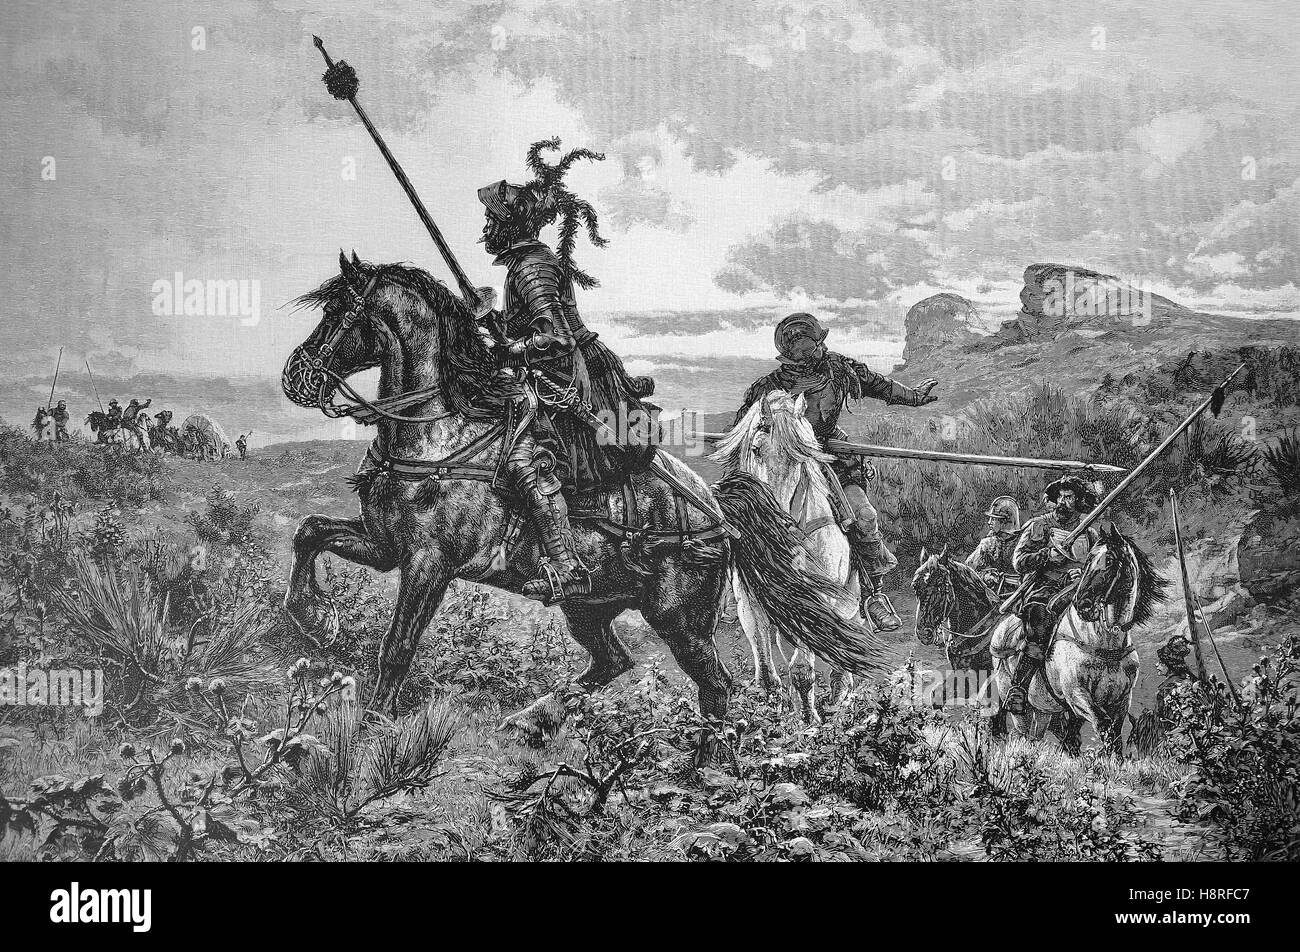 The robber barons or robber knights attacked a goods transport in the Middle Ages - Stock Image